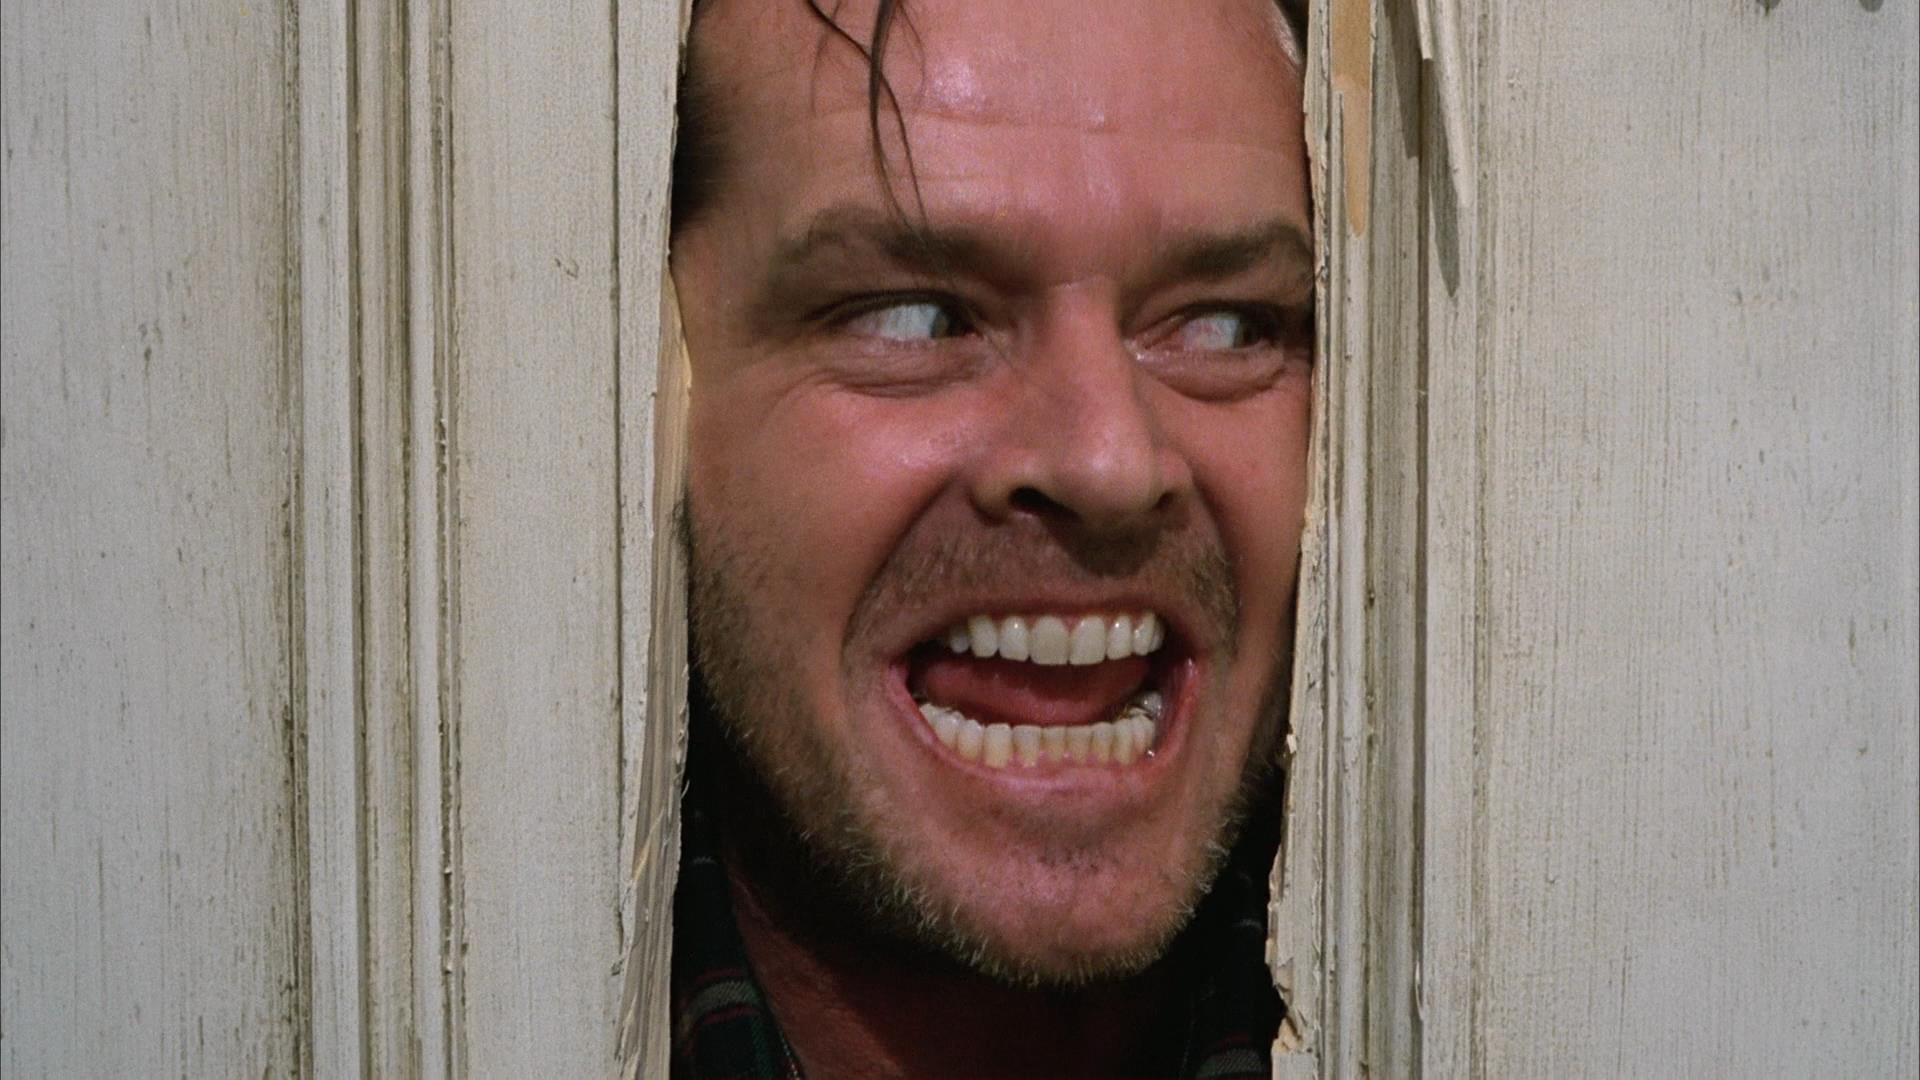 Cult Stories The Shining Jack Nicholson Stanley Kubrick cinema horror thriller movie 1980